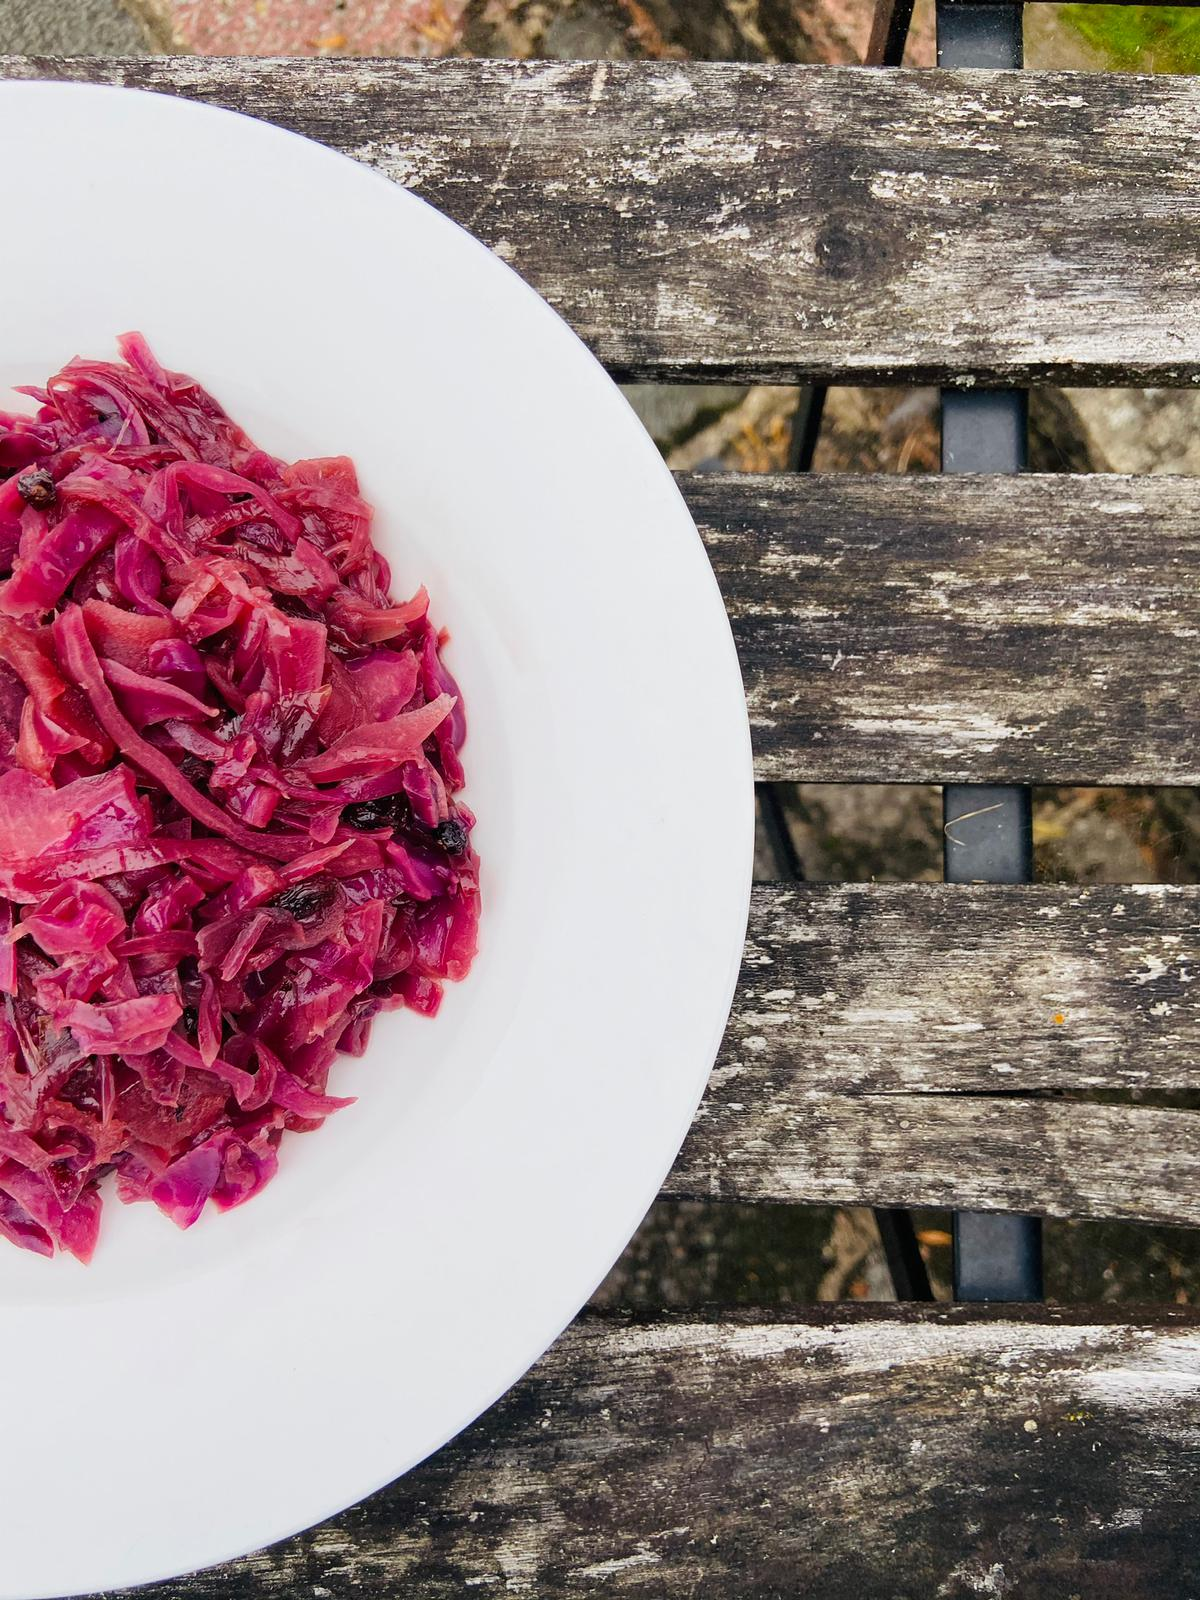 BRAISED RED CABBAGE 2.0